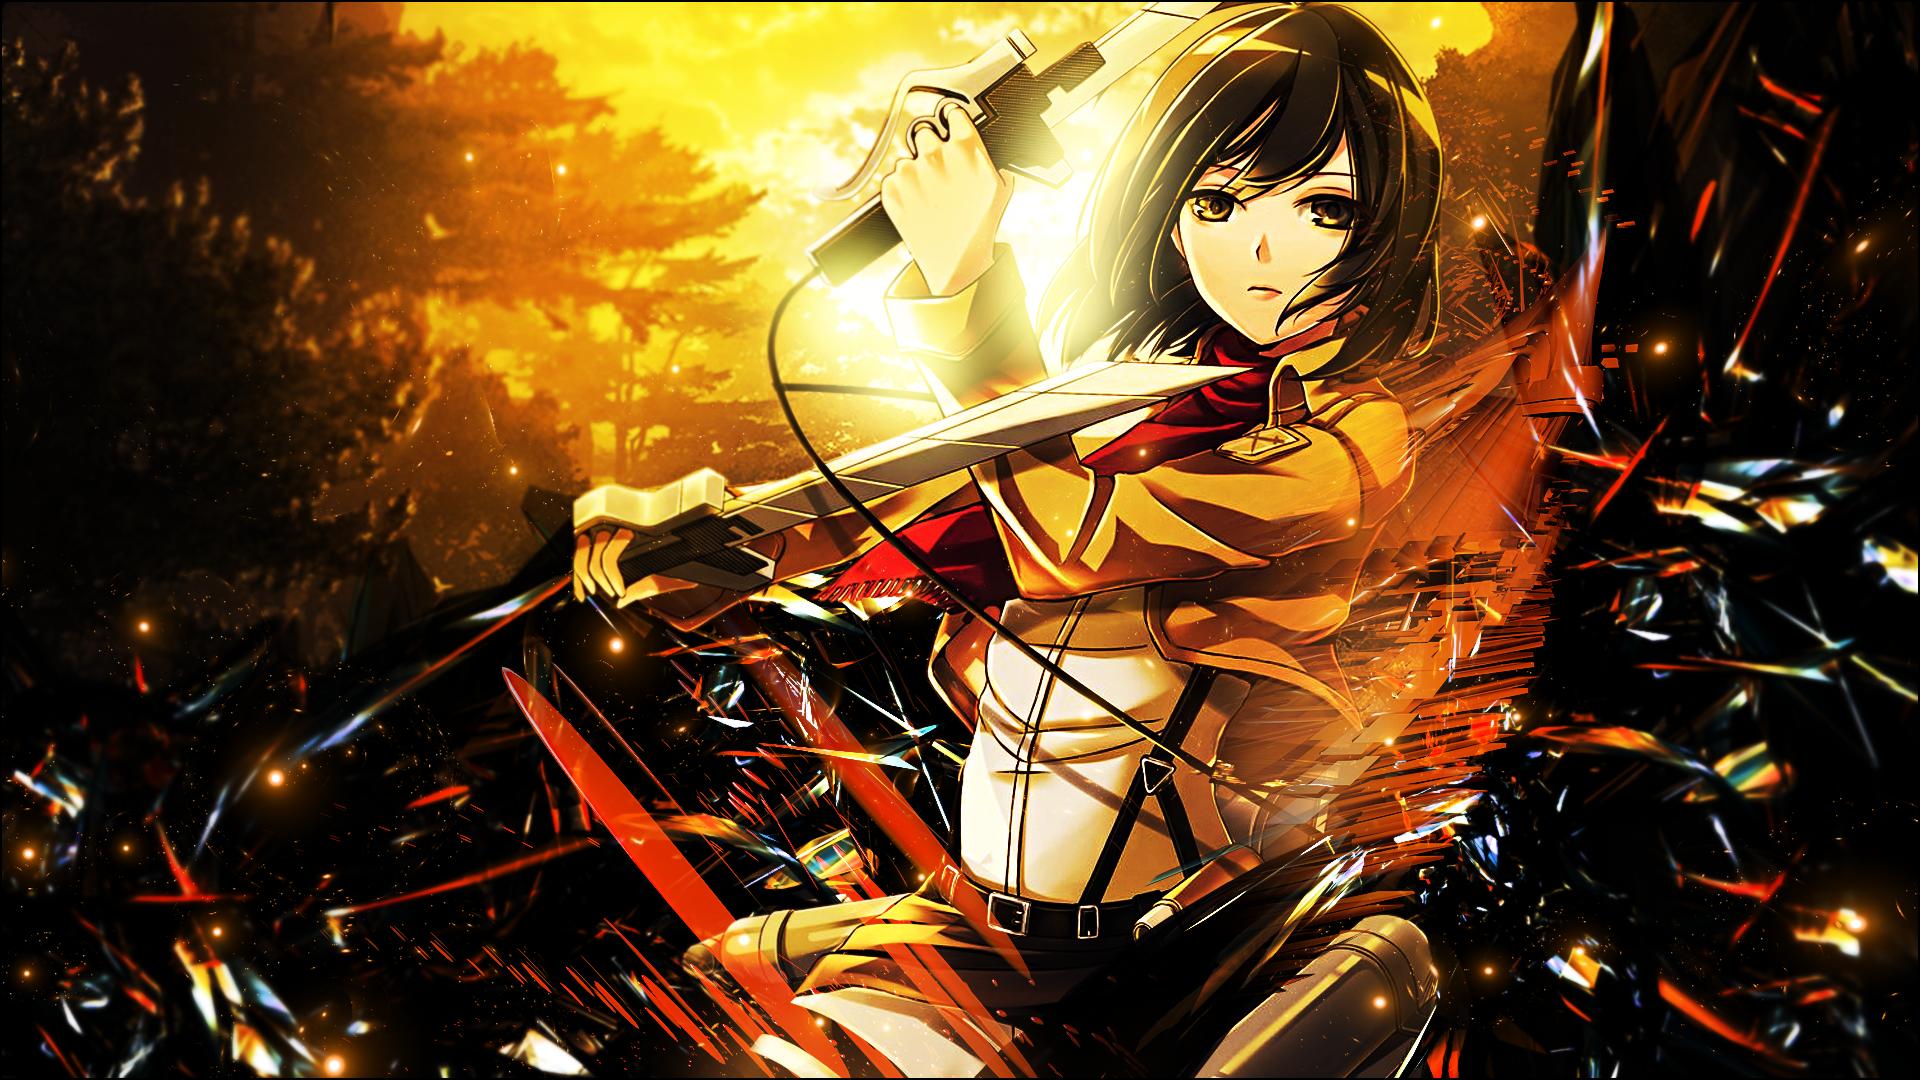 612525 Title Mikasa Ackerman Anime Attack On Titan Mikasa Ackerman Wallpaper Hd 1920x1080 Download Hd Wallpaper Wallpapertip